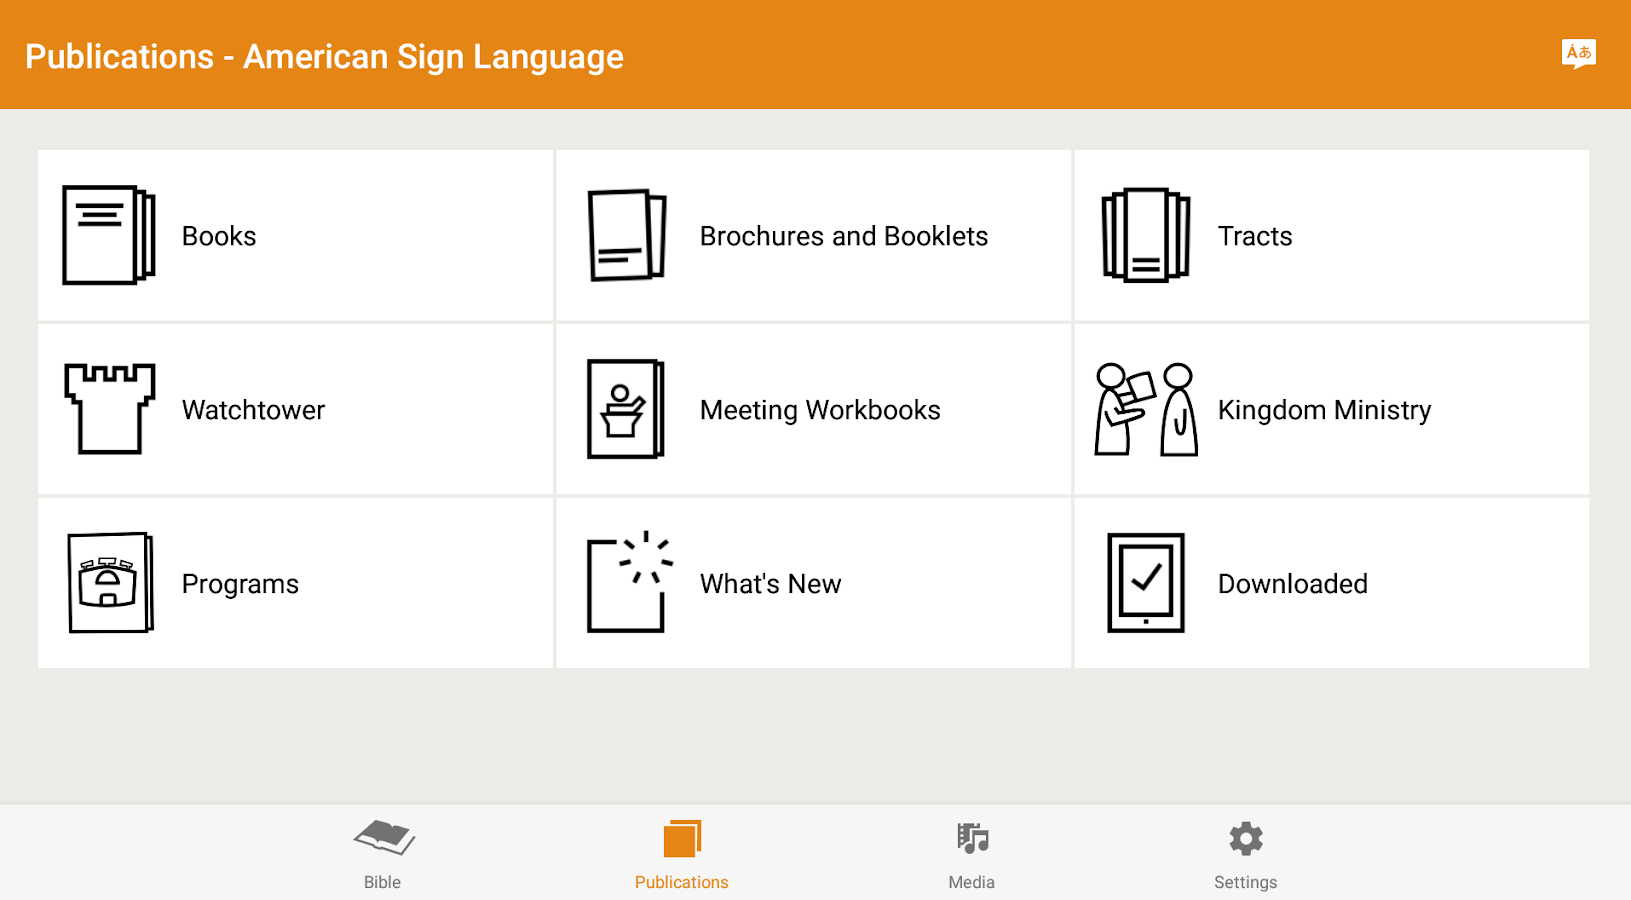 Screenshots of JW Library Sign Language for iPhone